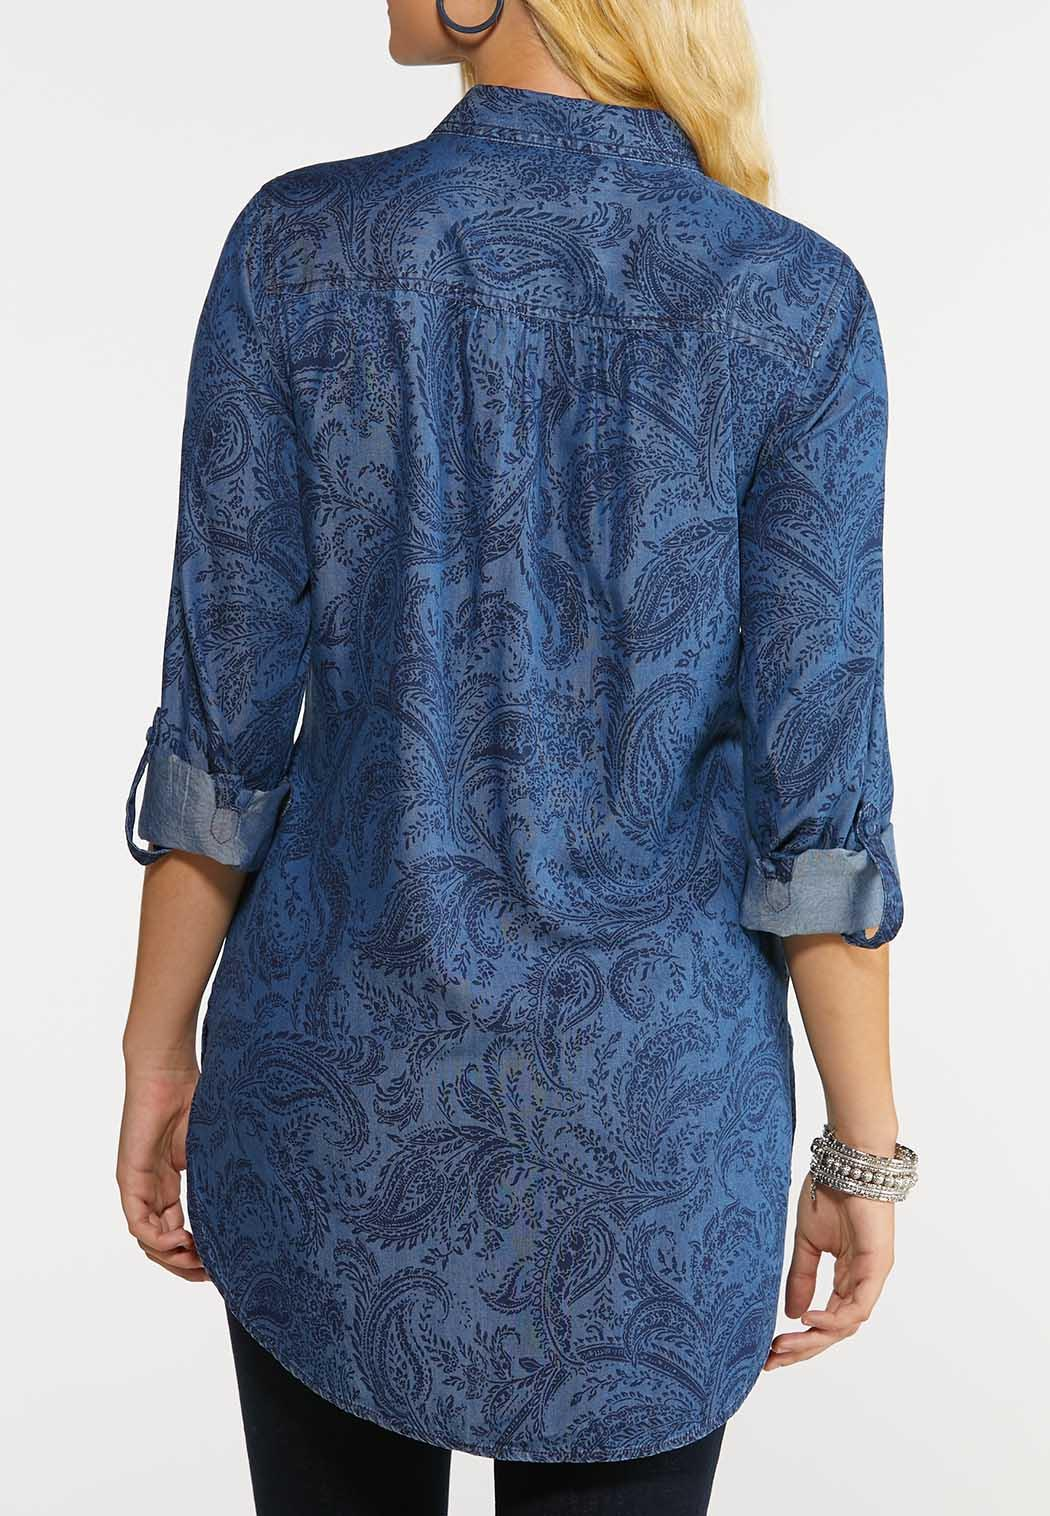 Paisley Chambray Top (Item #43999233)